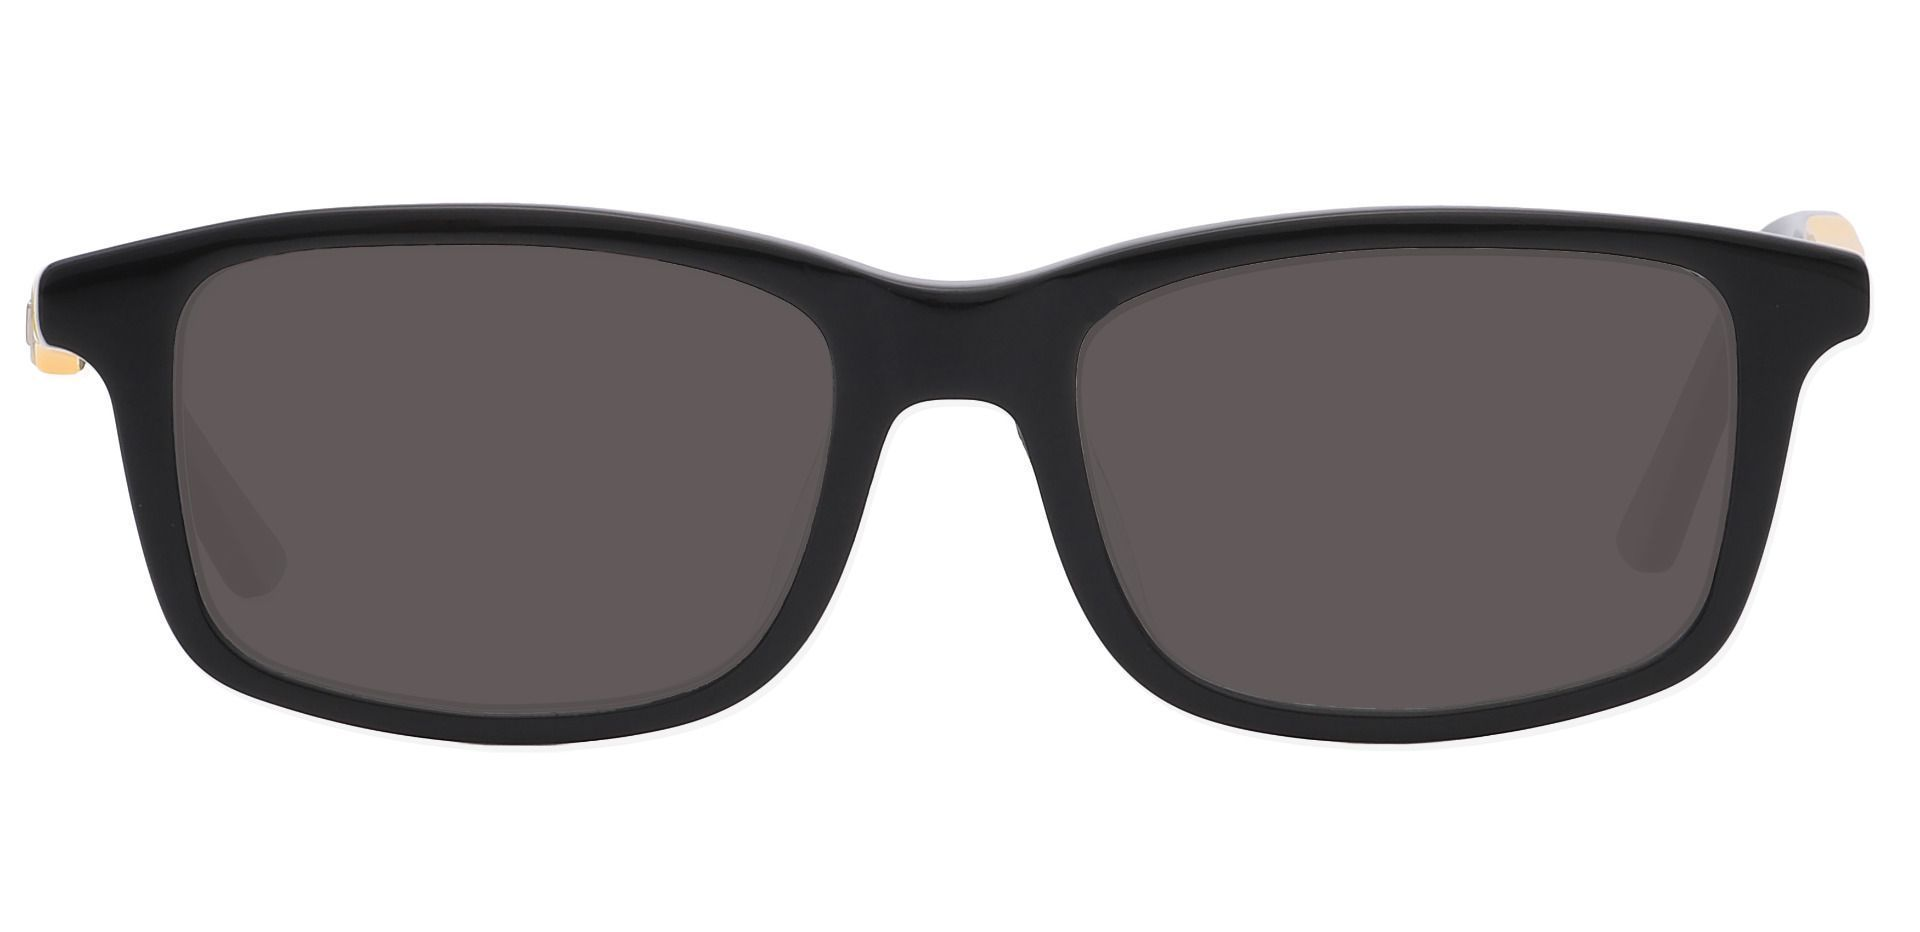 Allegheny Rectangle Non-Rx Sunglasses - Black Frame With Gray Lenses